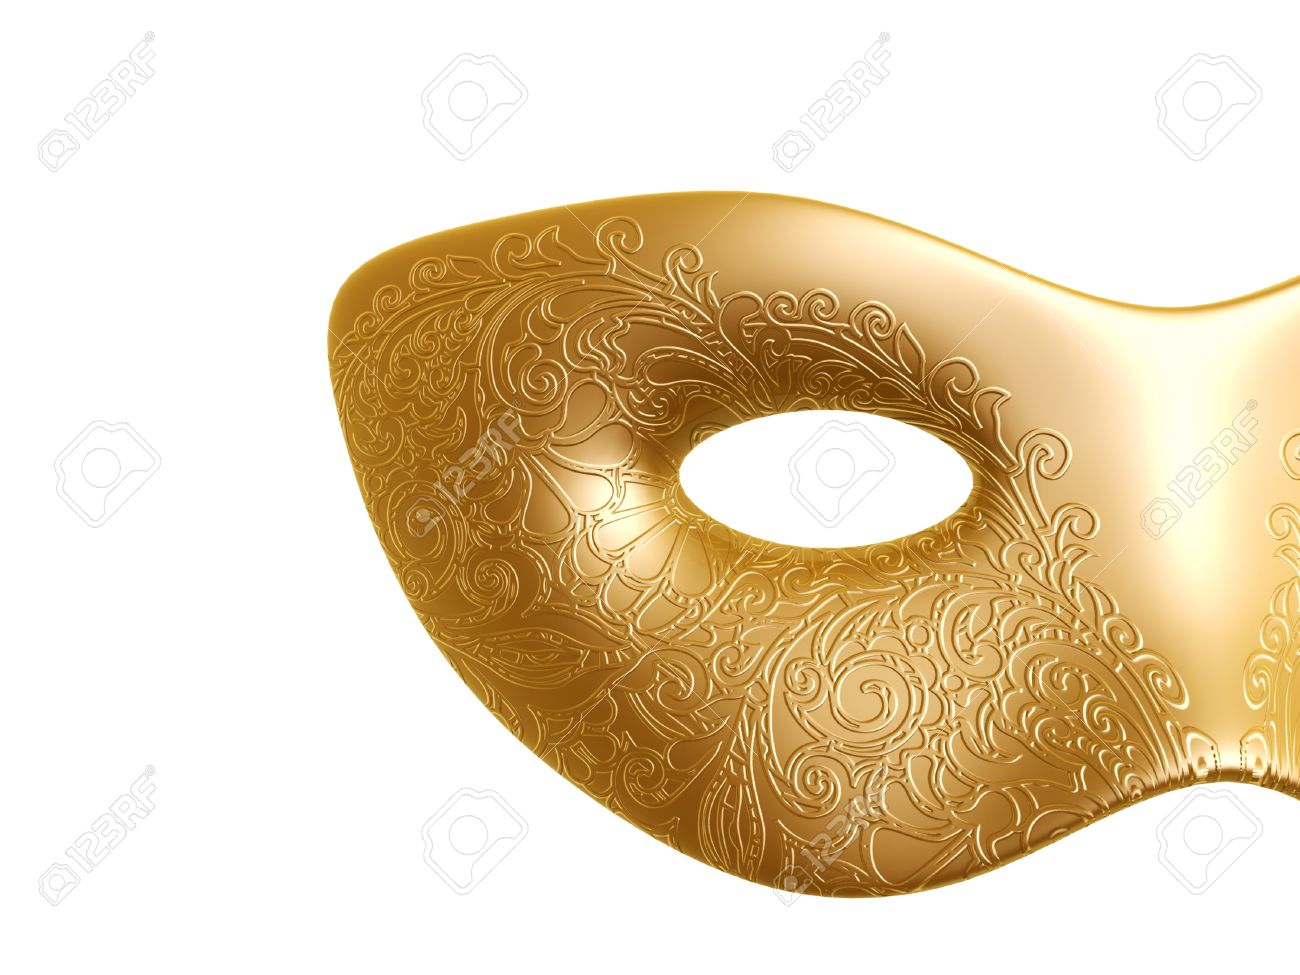 Golden Carnival Mask With Flora Texture Pattern Isolated On White.